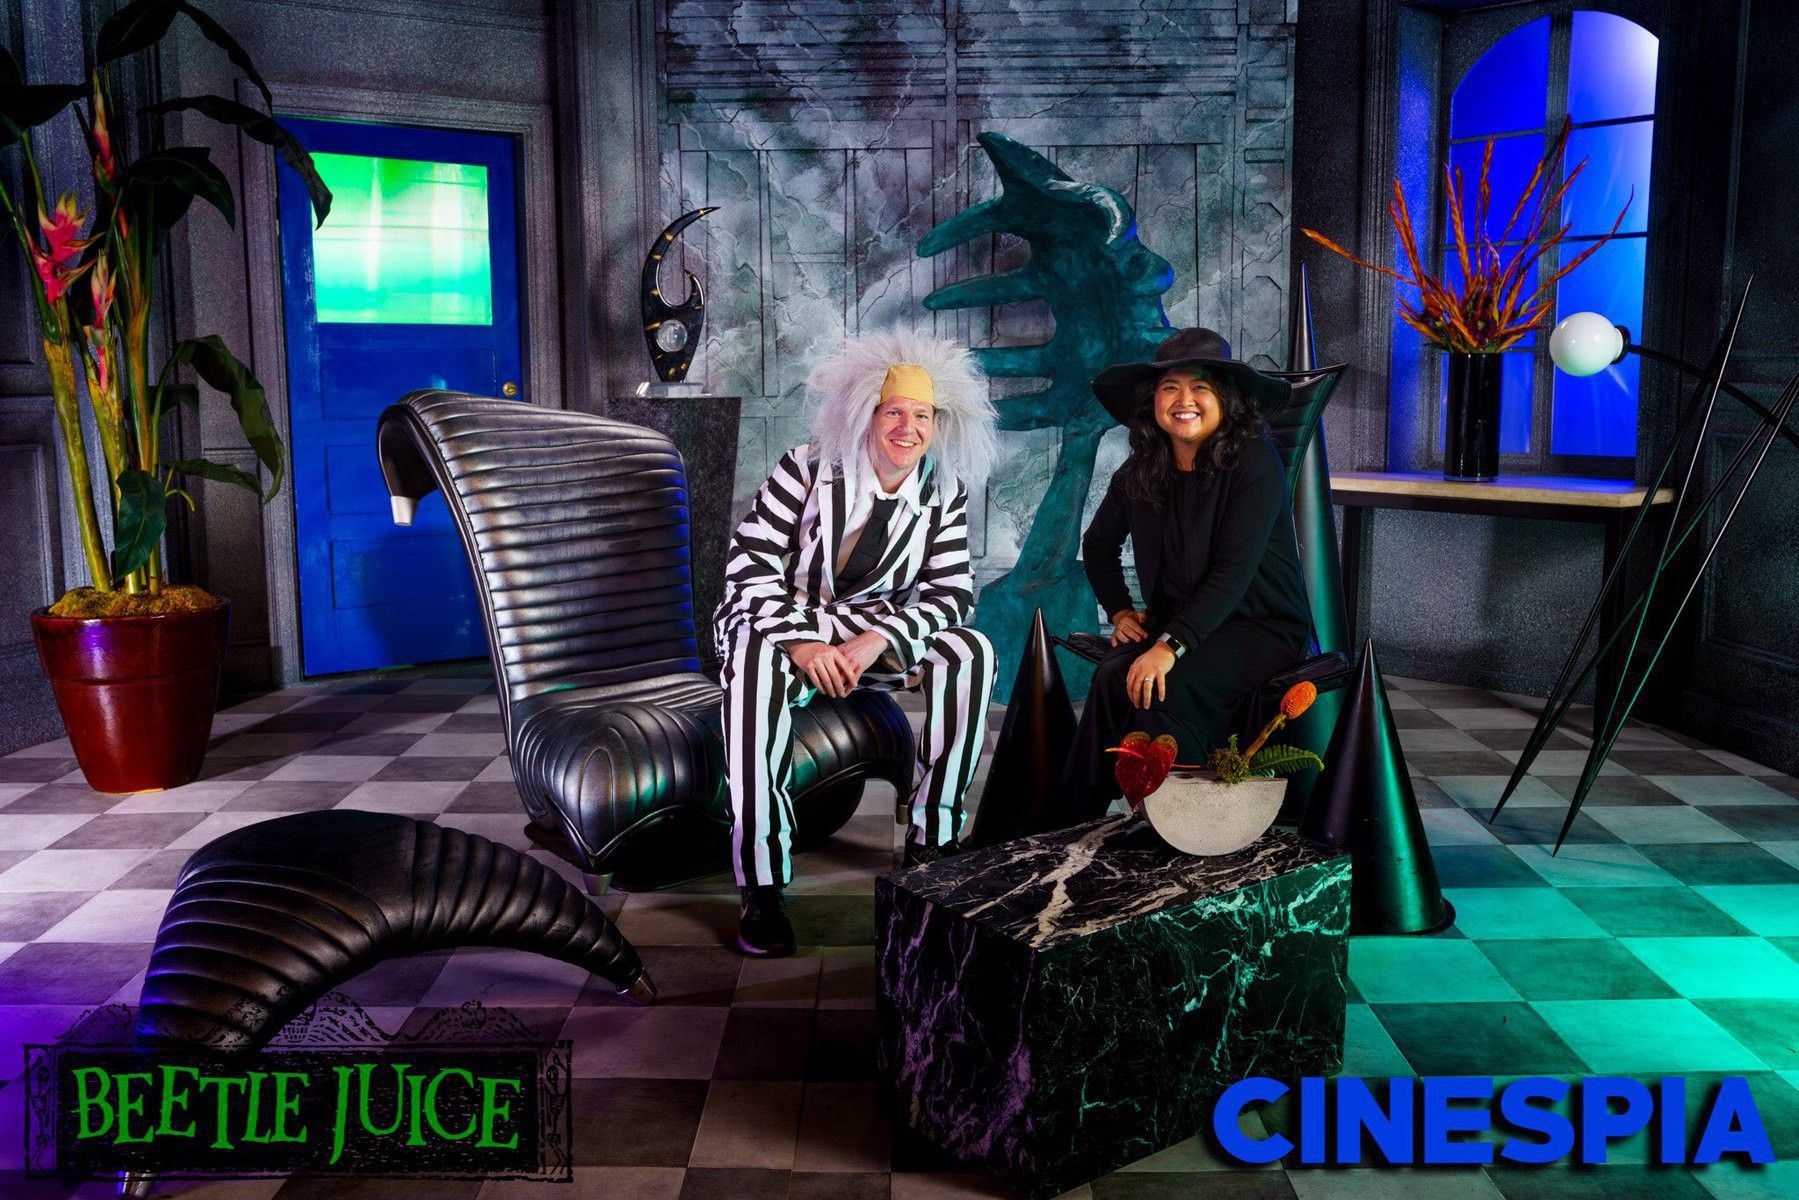 Beetlejuice at Hollywood Forever